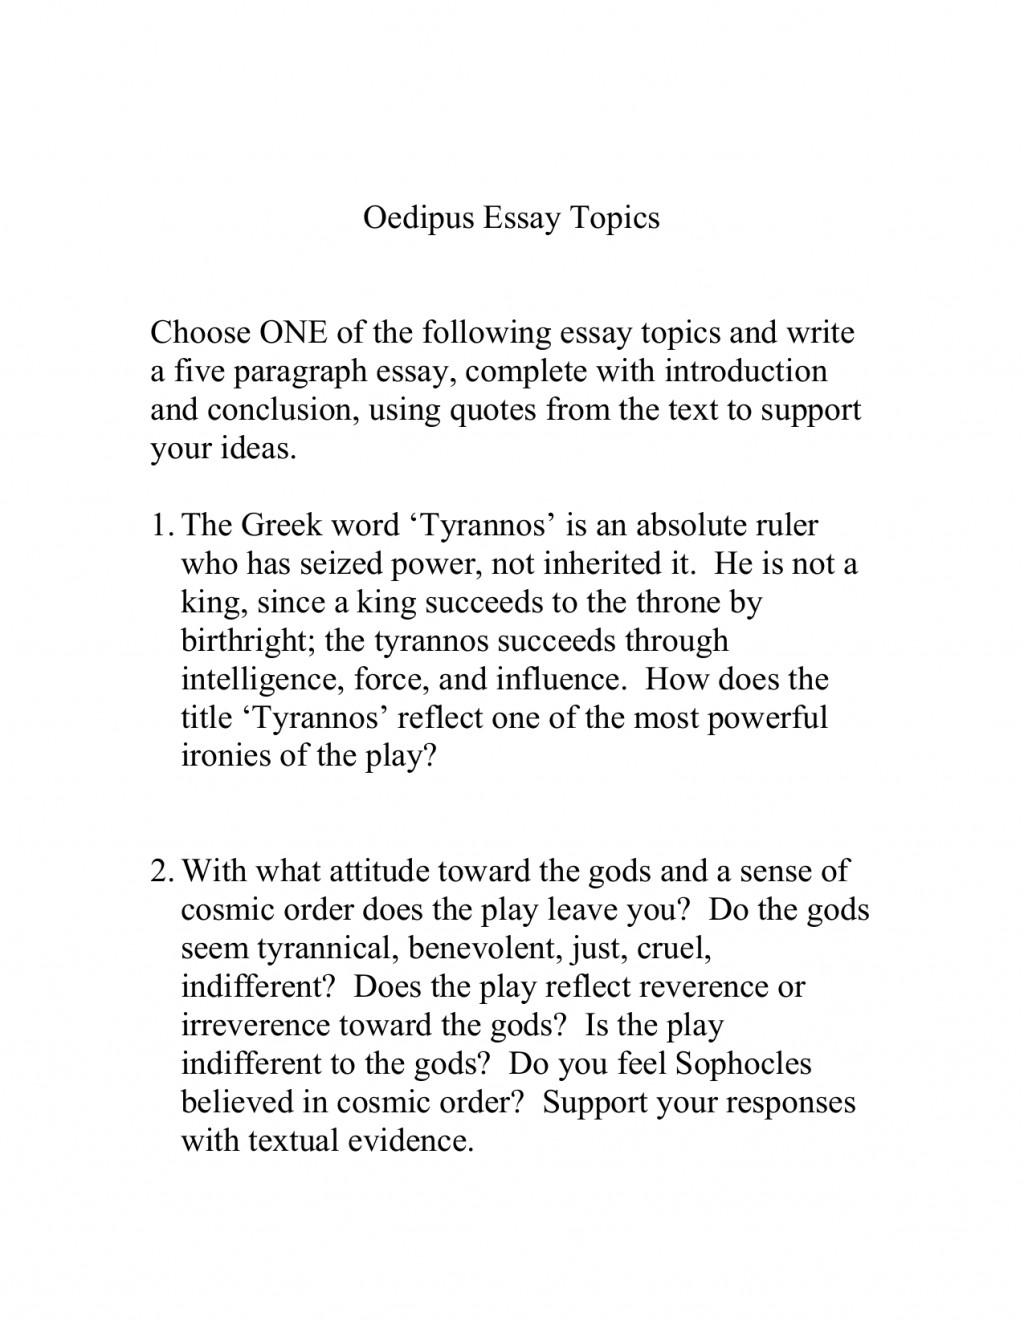 002 010776288 1 Oedipus Essay Beautiful Fate Questions Large